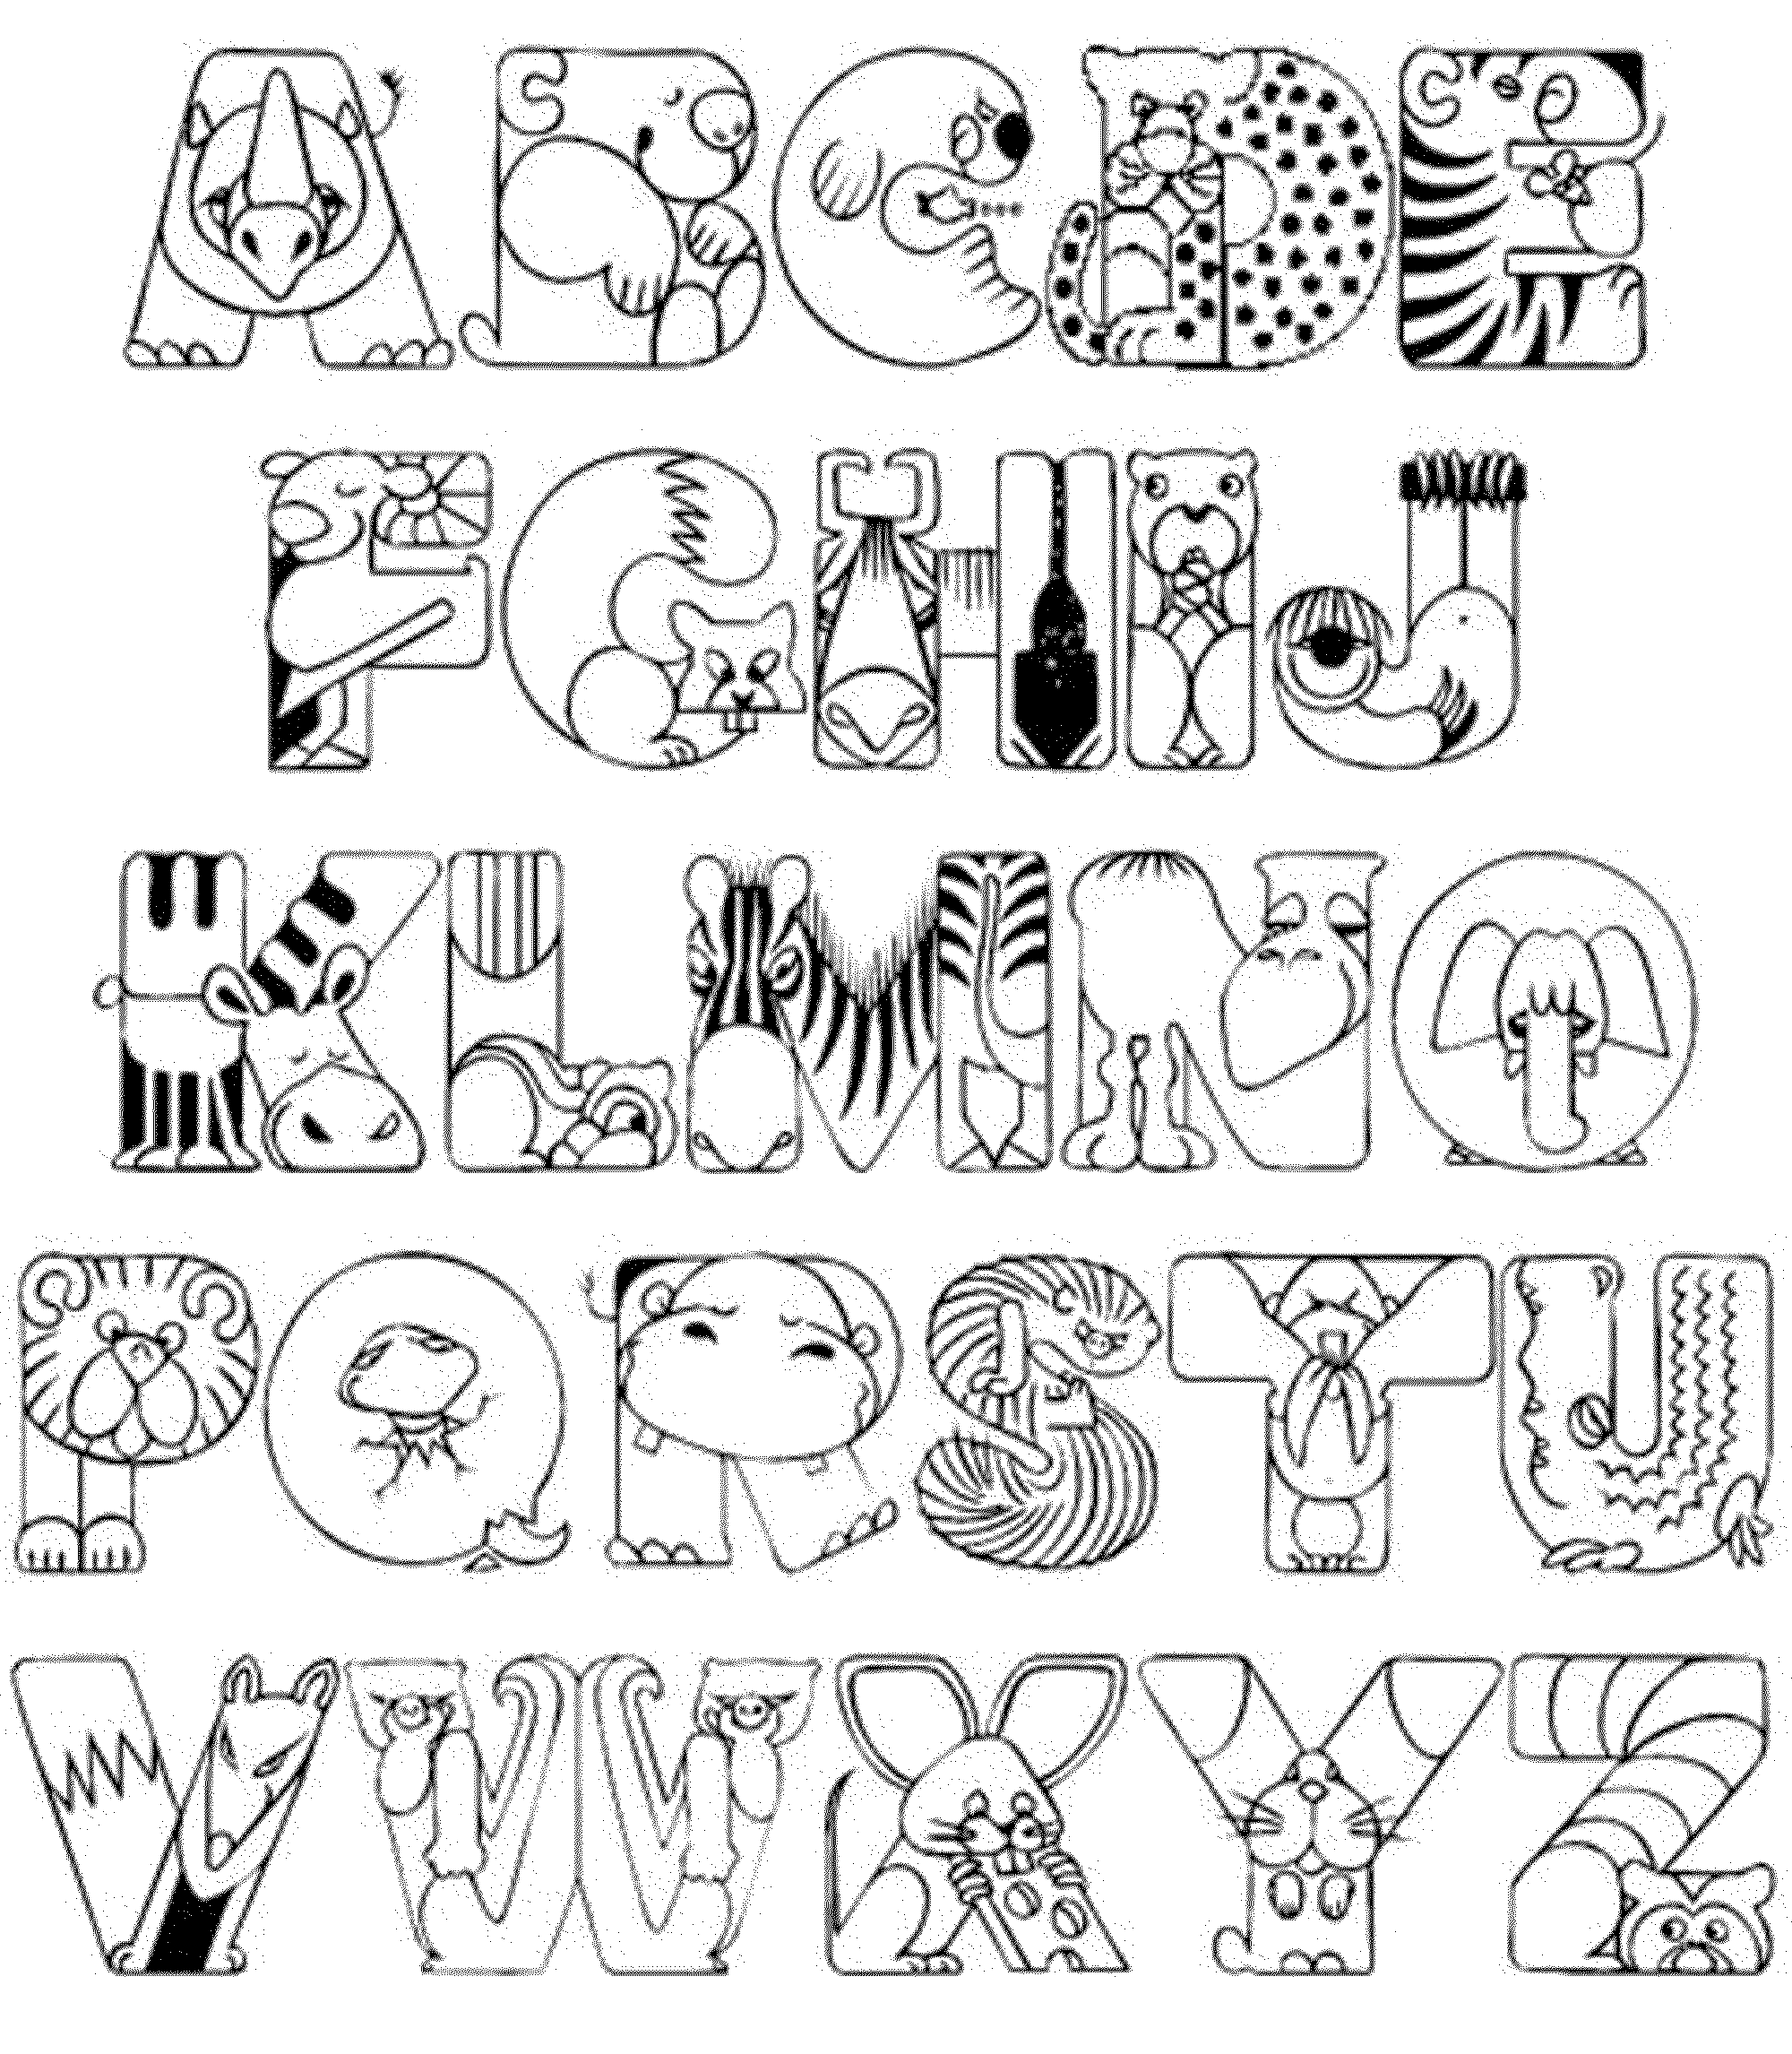 abc coloring book printable free printable alphabet coloring pages for kids best book coloring printable abc